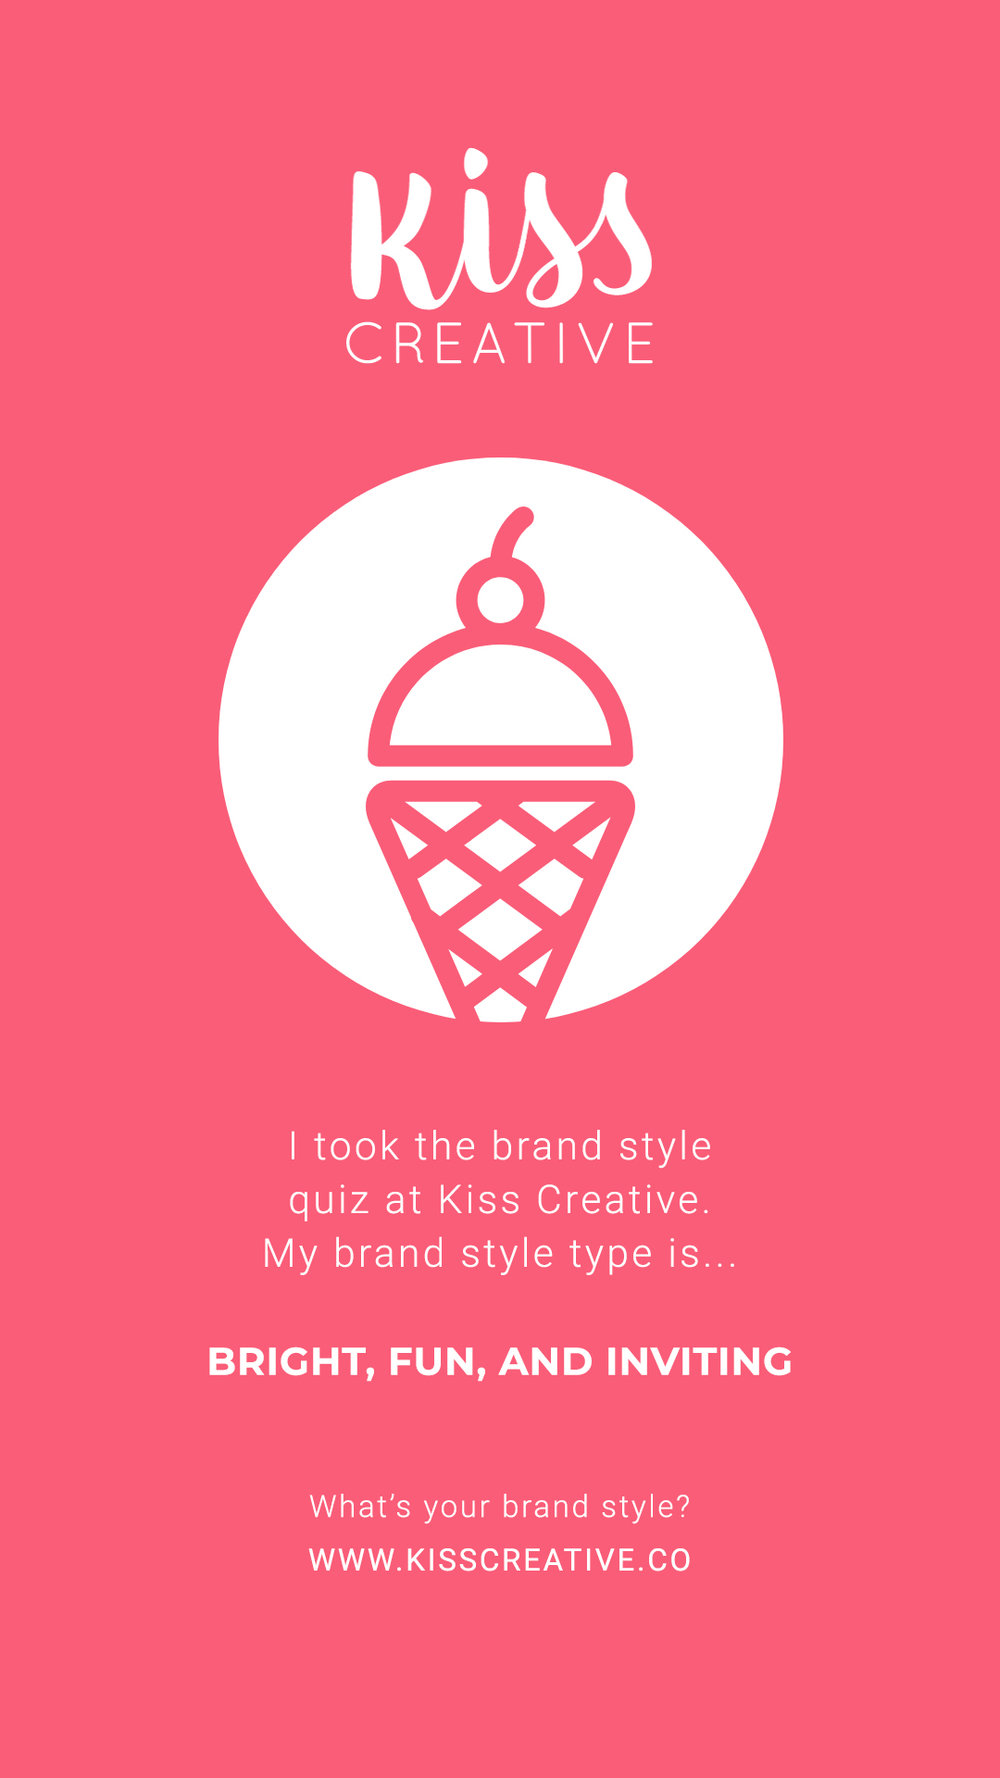 I took the Kiss Creative brand style quiz and I got Bright, Fun, and Inviting!I took the Kiss Creative brand style quiz and I got Bright, Fun, and Inviting!